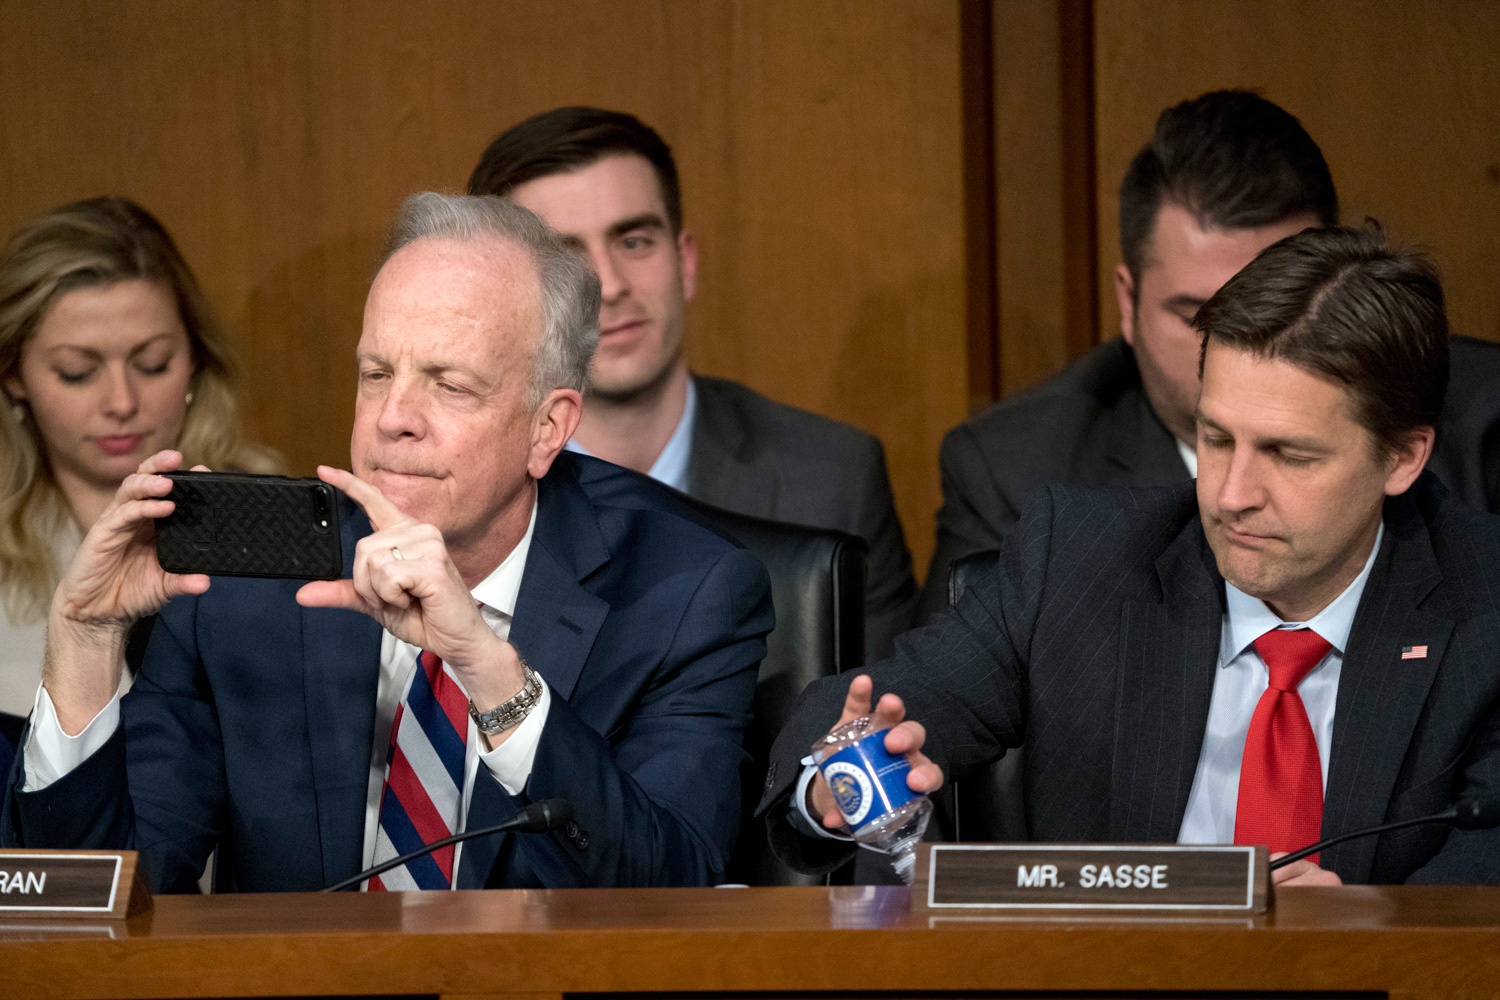 "<div class=""meta image-caption""><div class=""origin-logo origin-image none""><span>none</span></div><span class=""caption-text"">Sen. Jerry Moran, R-Kan., left, accompanied by Sen. Ben Sasse, R-Neb., right, takes a photo as Facebook CEO Mark Zuckerberg testifies. (Andrew Harnik/AP Photo)</span></div>"